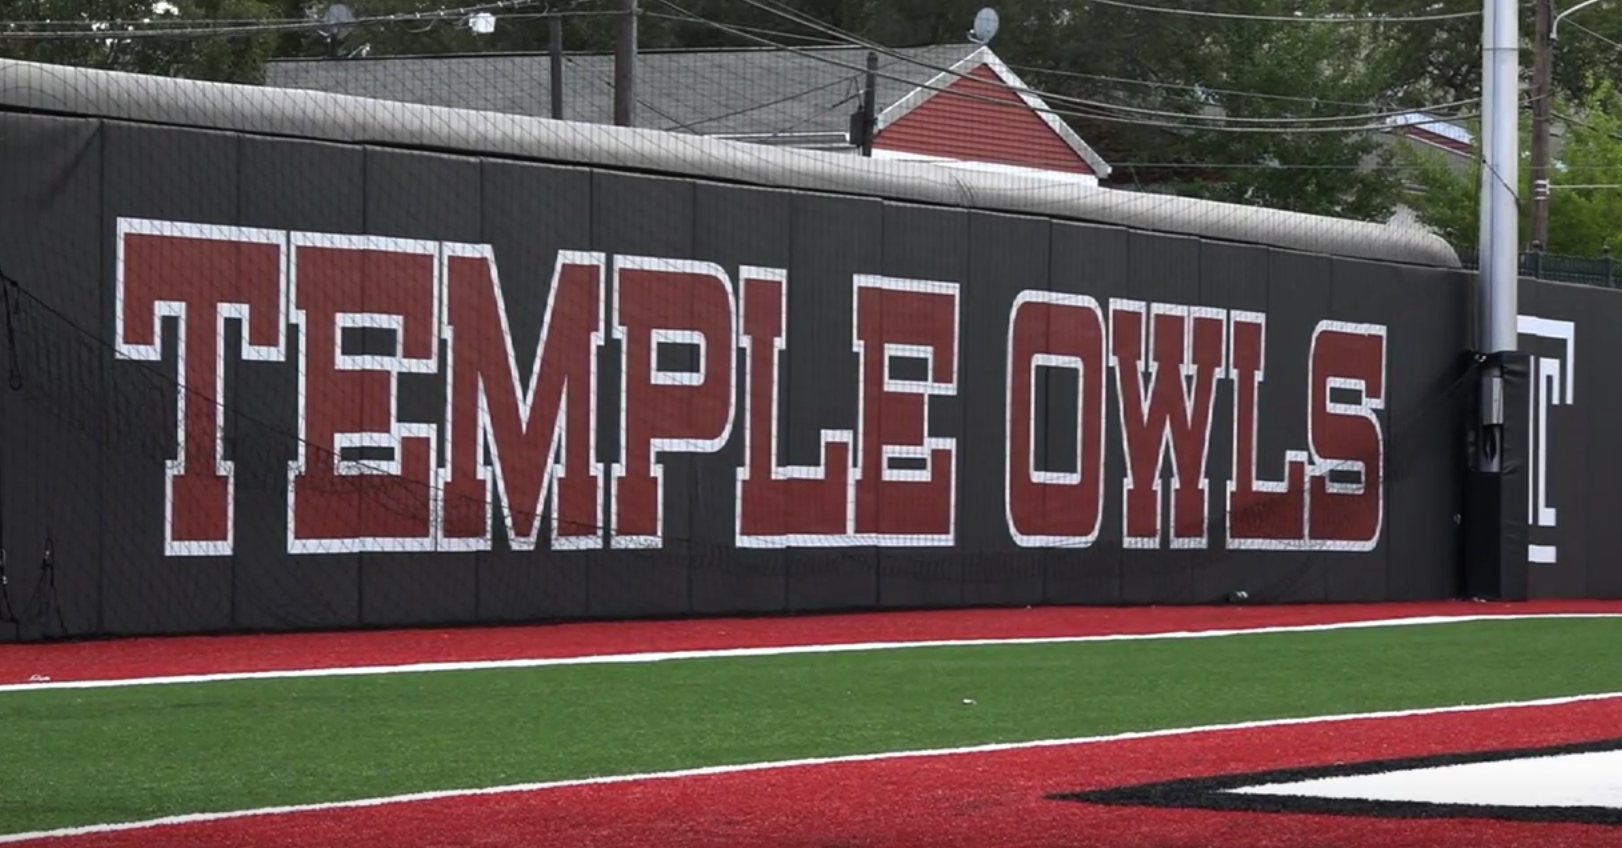 Temple Owls go for a 5-0 record going into university homecoming game.